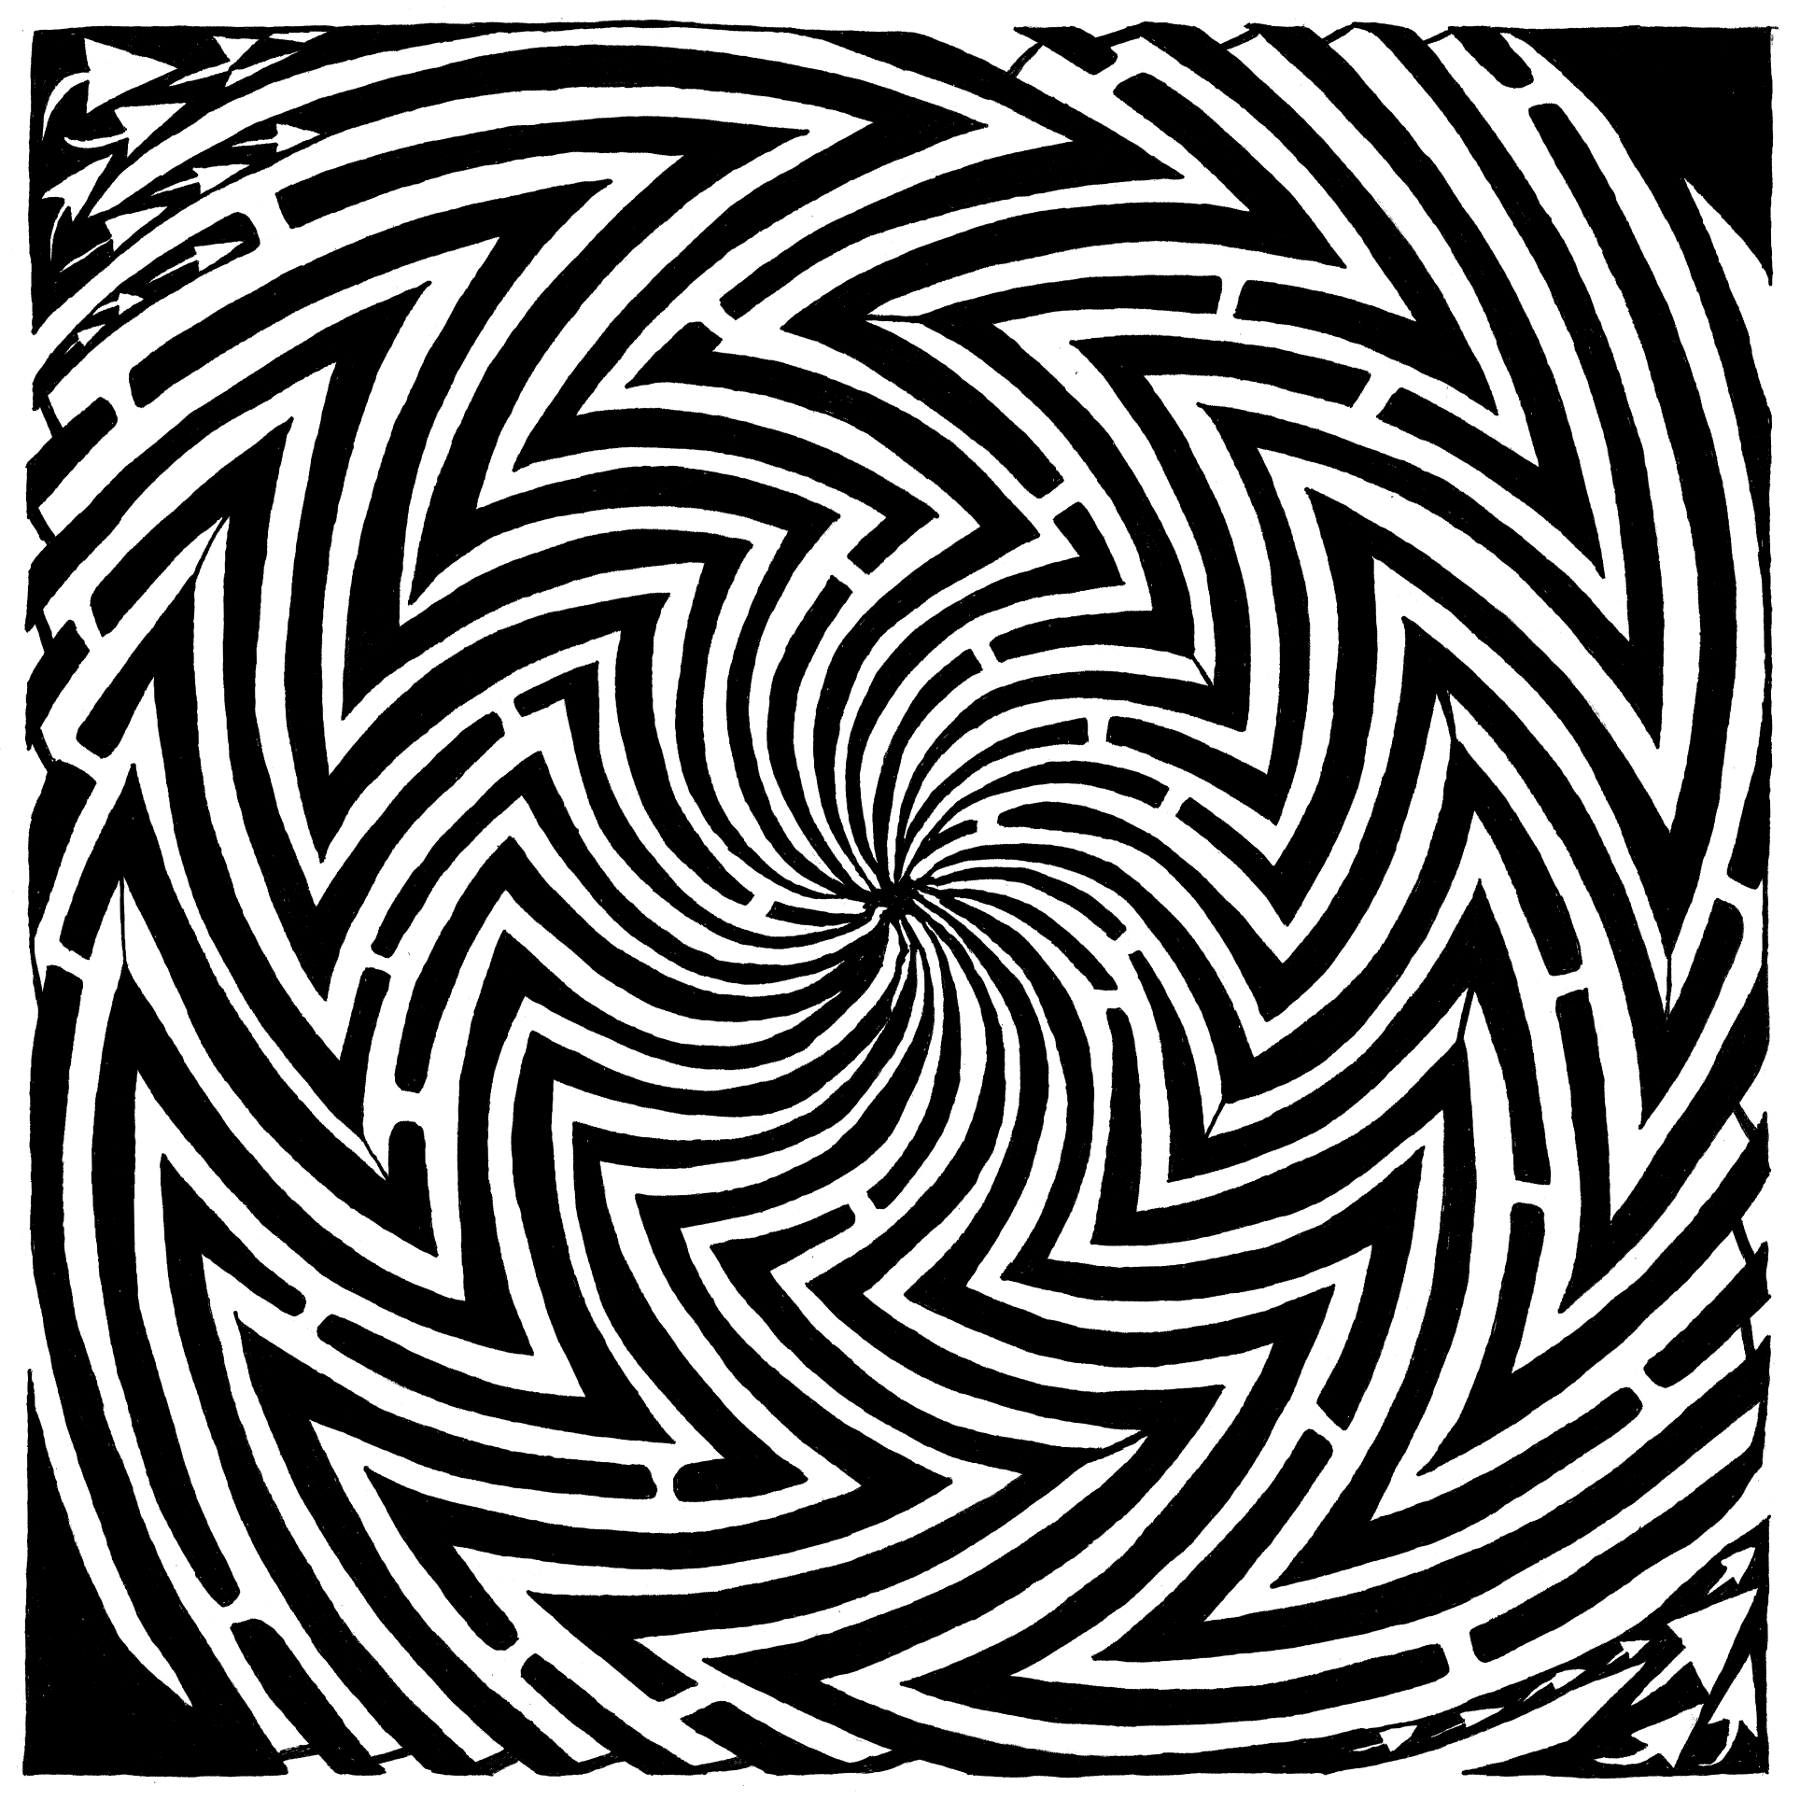 http://teamofmonkeys.com/optical-illusion-maze-art/mazes/please-stop-spinning-optical-illusion-maze-art-yonatan-frimer-super-swirly-1000.png